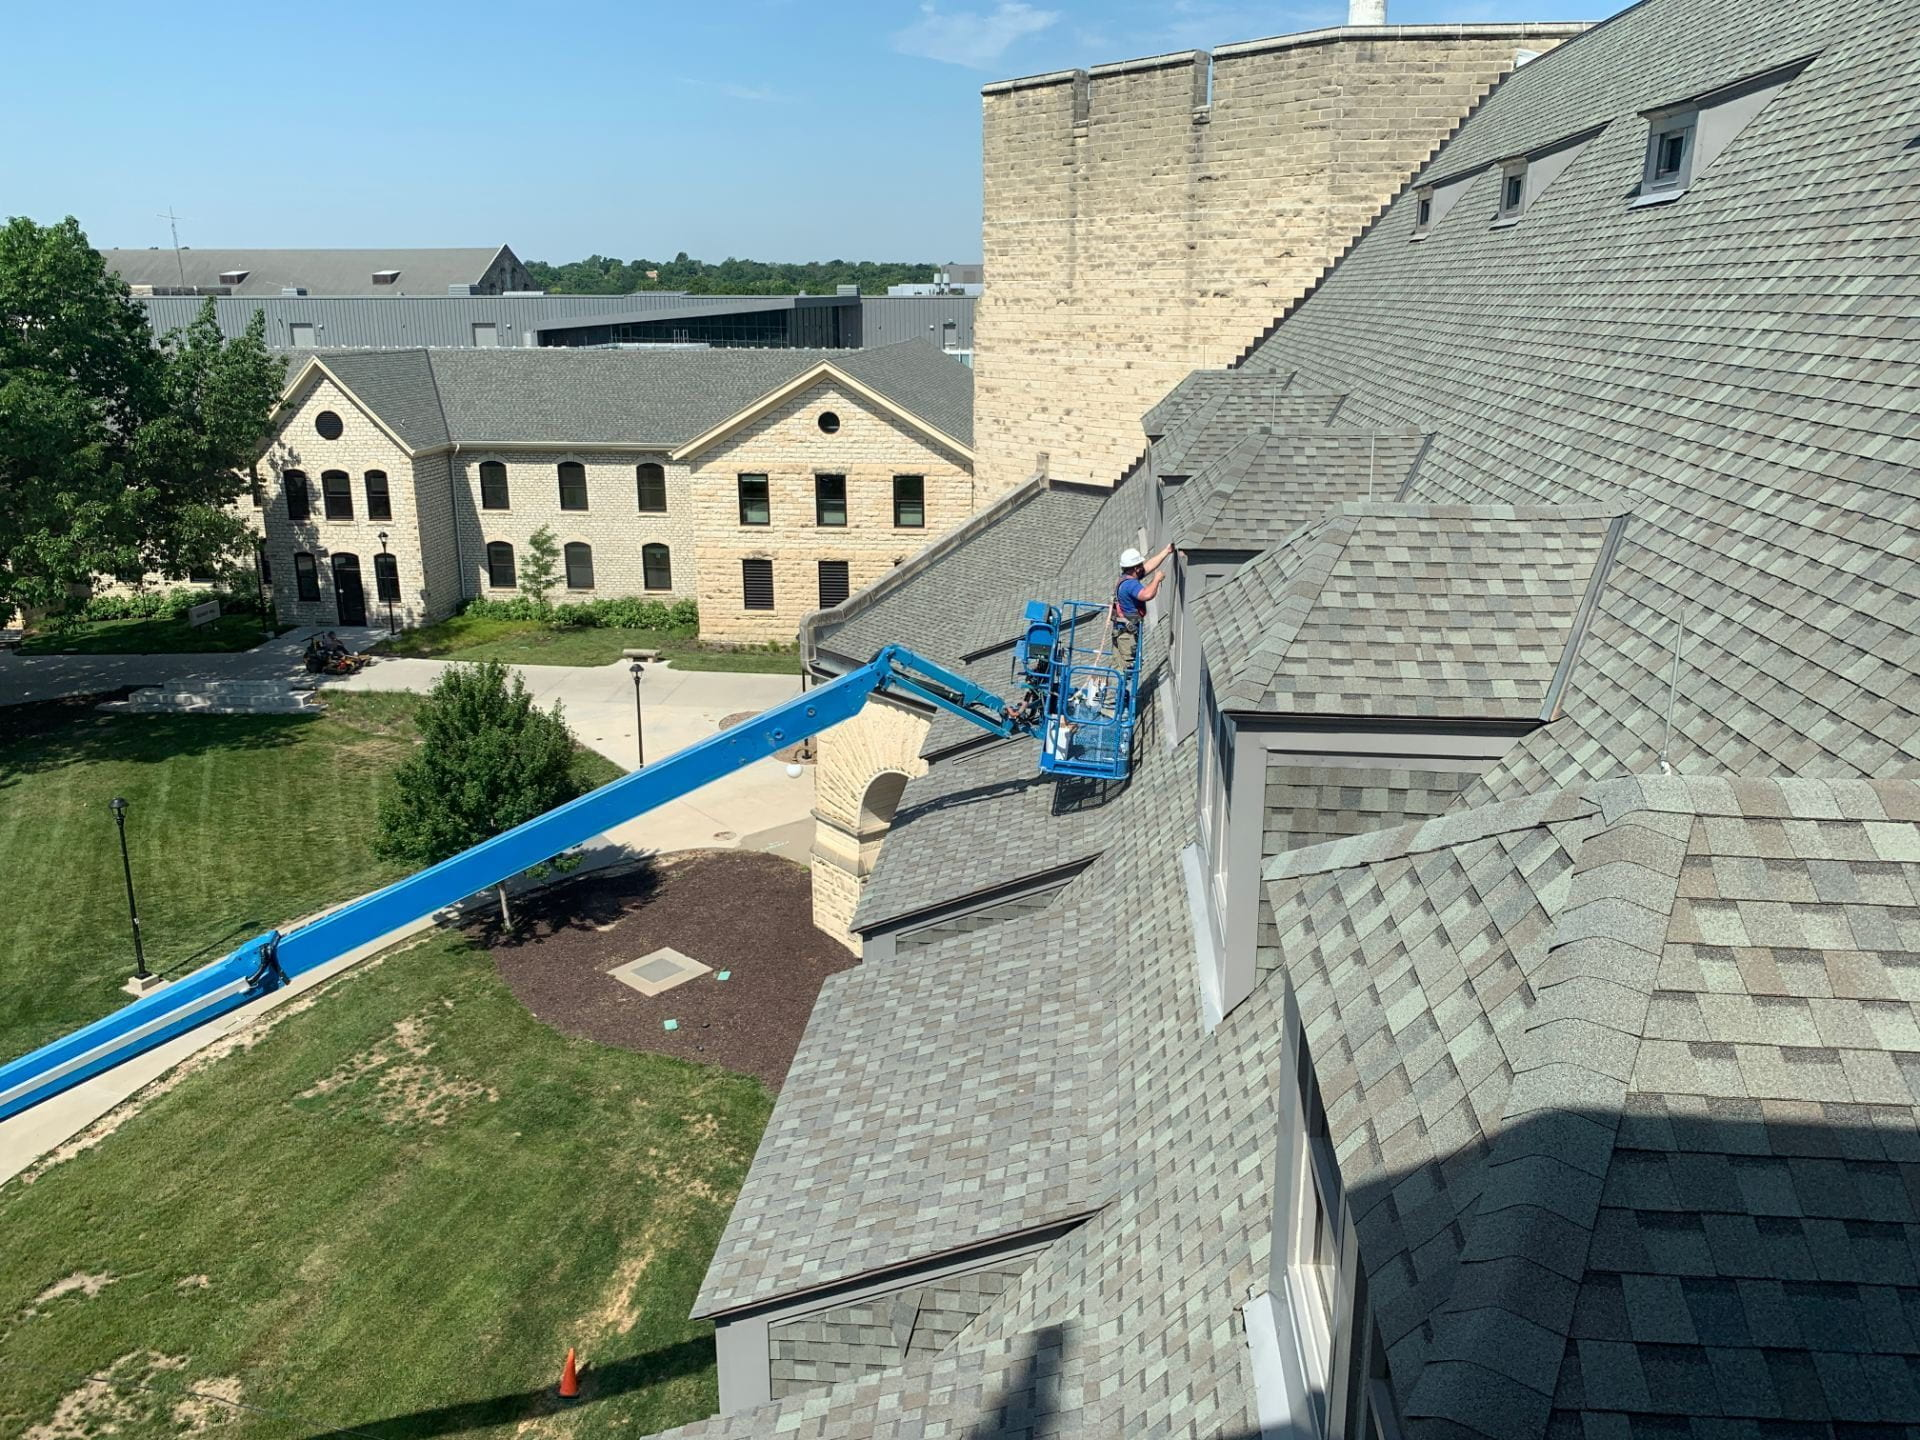 A picture of a crew member working on a lift outside the library.